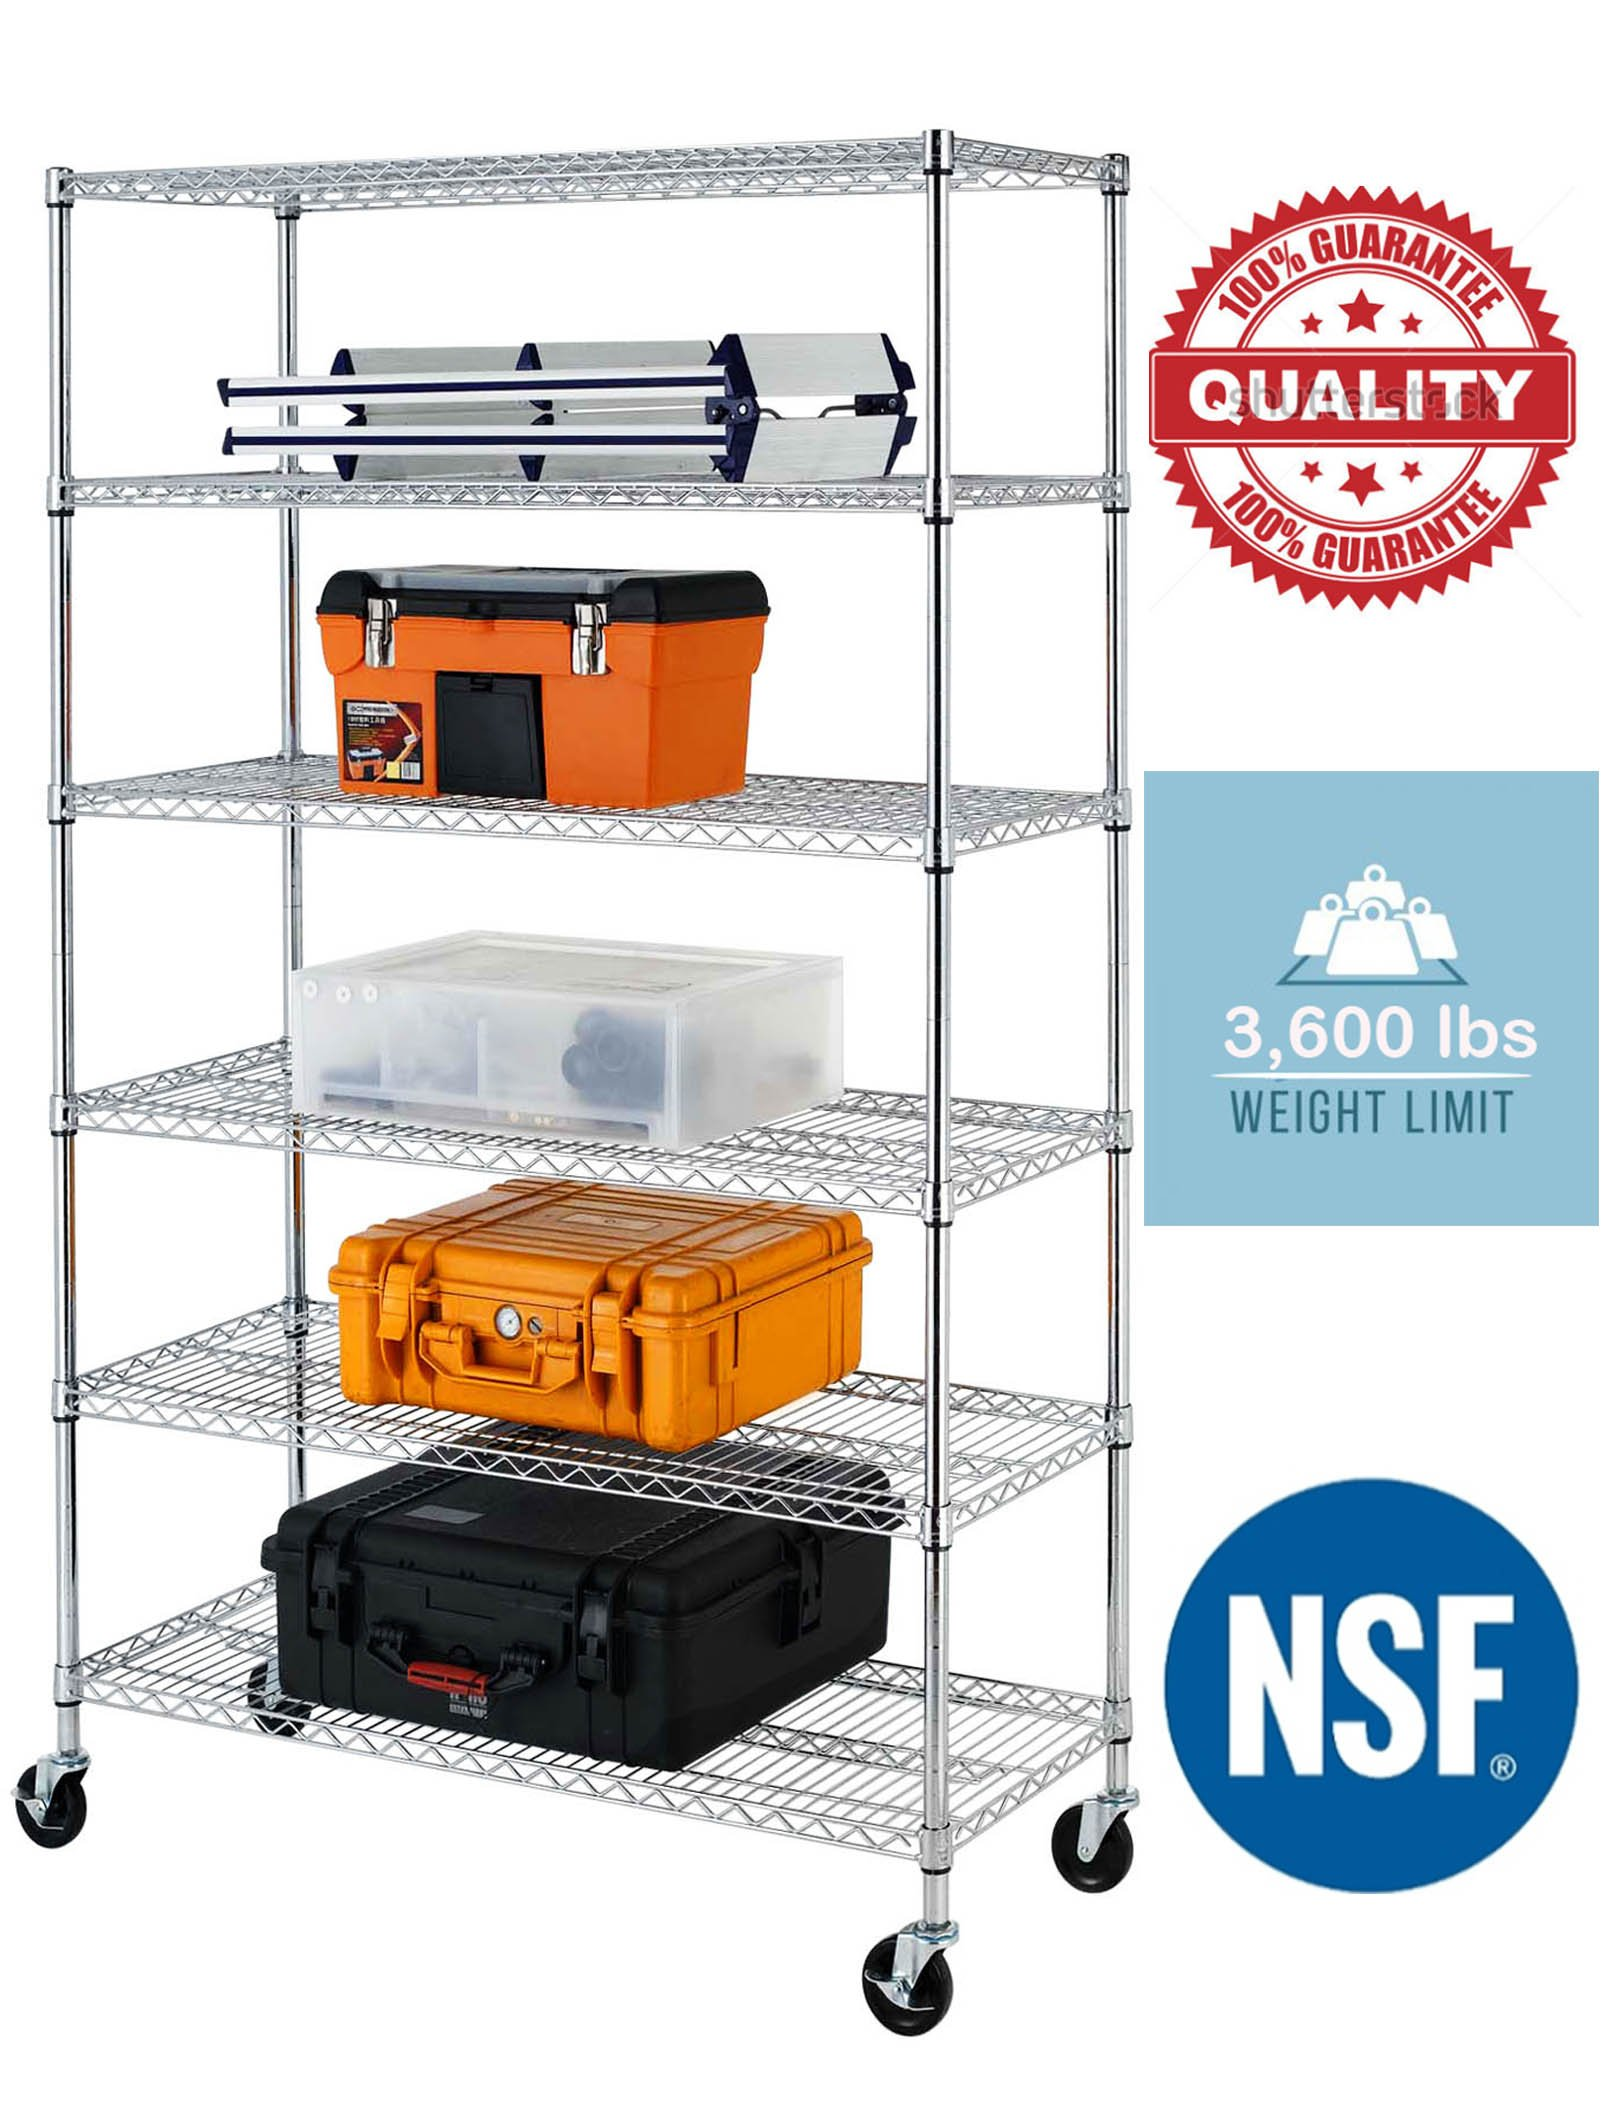 76''(H) x 48''(L) x 18''(D) Chrome Commercial Heavy Duty 6 Layer/Tire Storage Rack Shelf Adjustable Steel Wire Metal Shelving Rack 3600 LBS Capacity